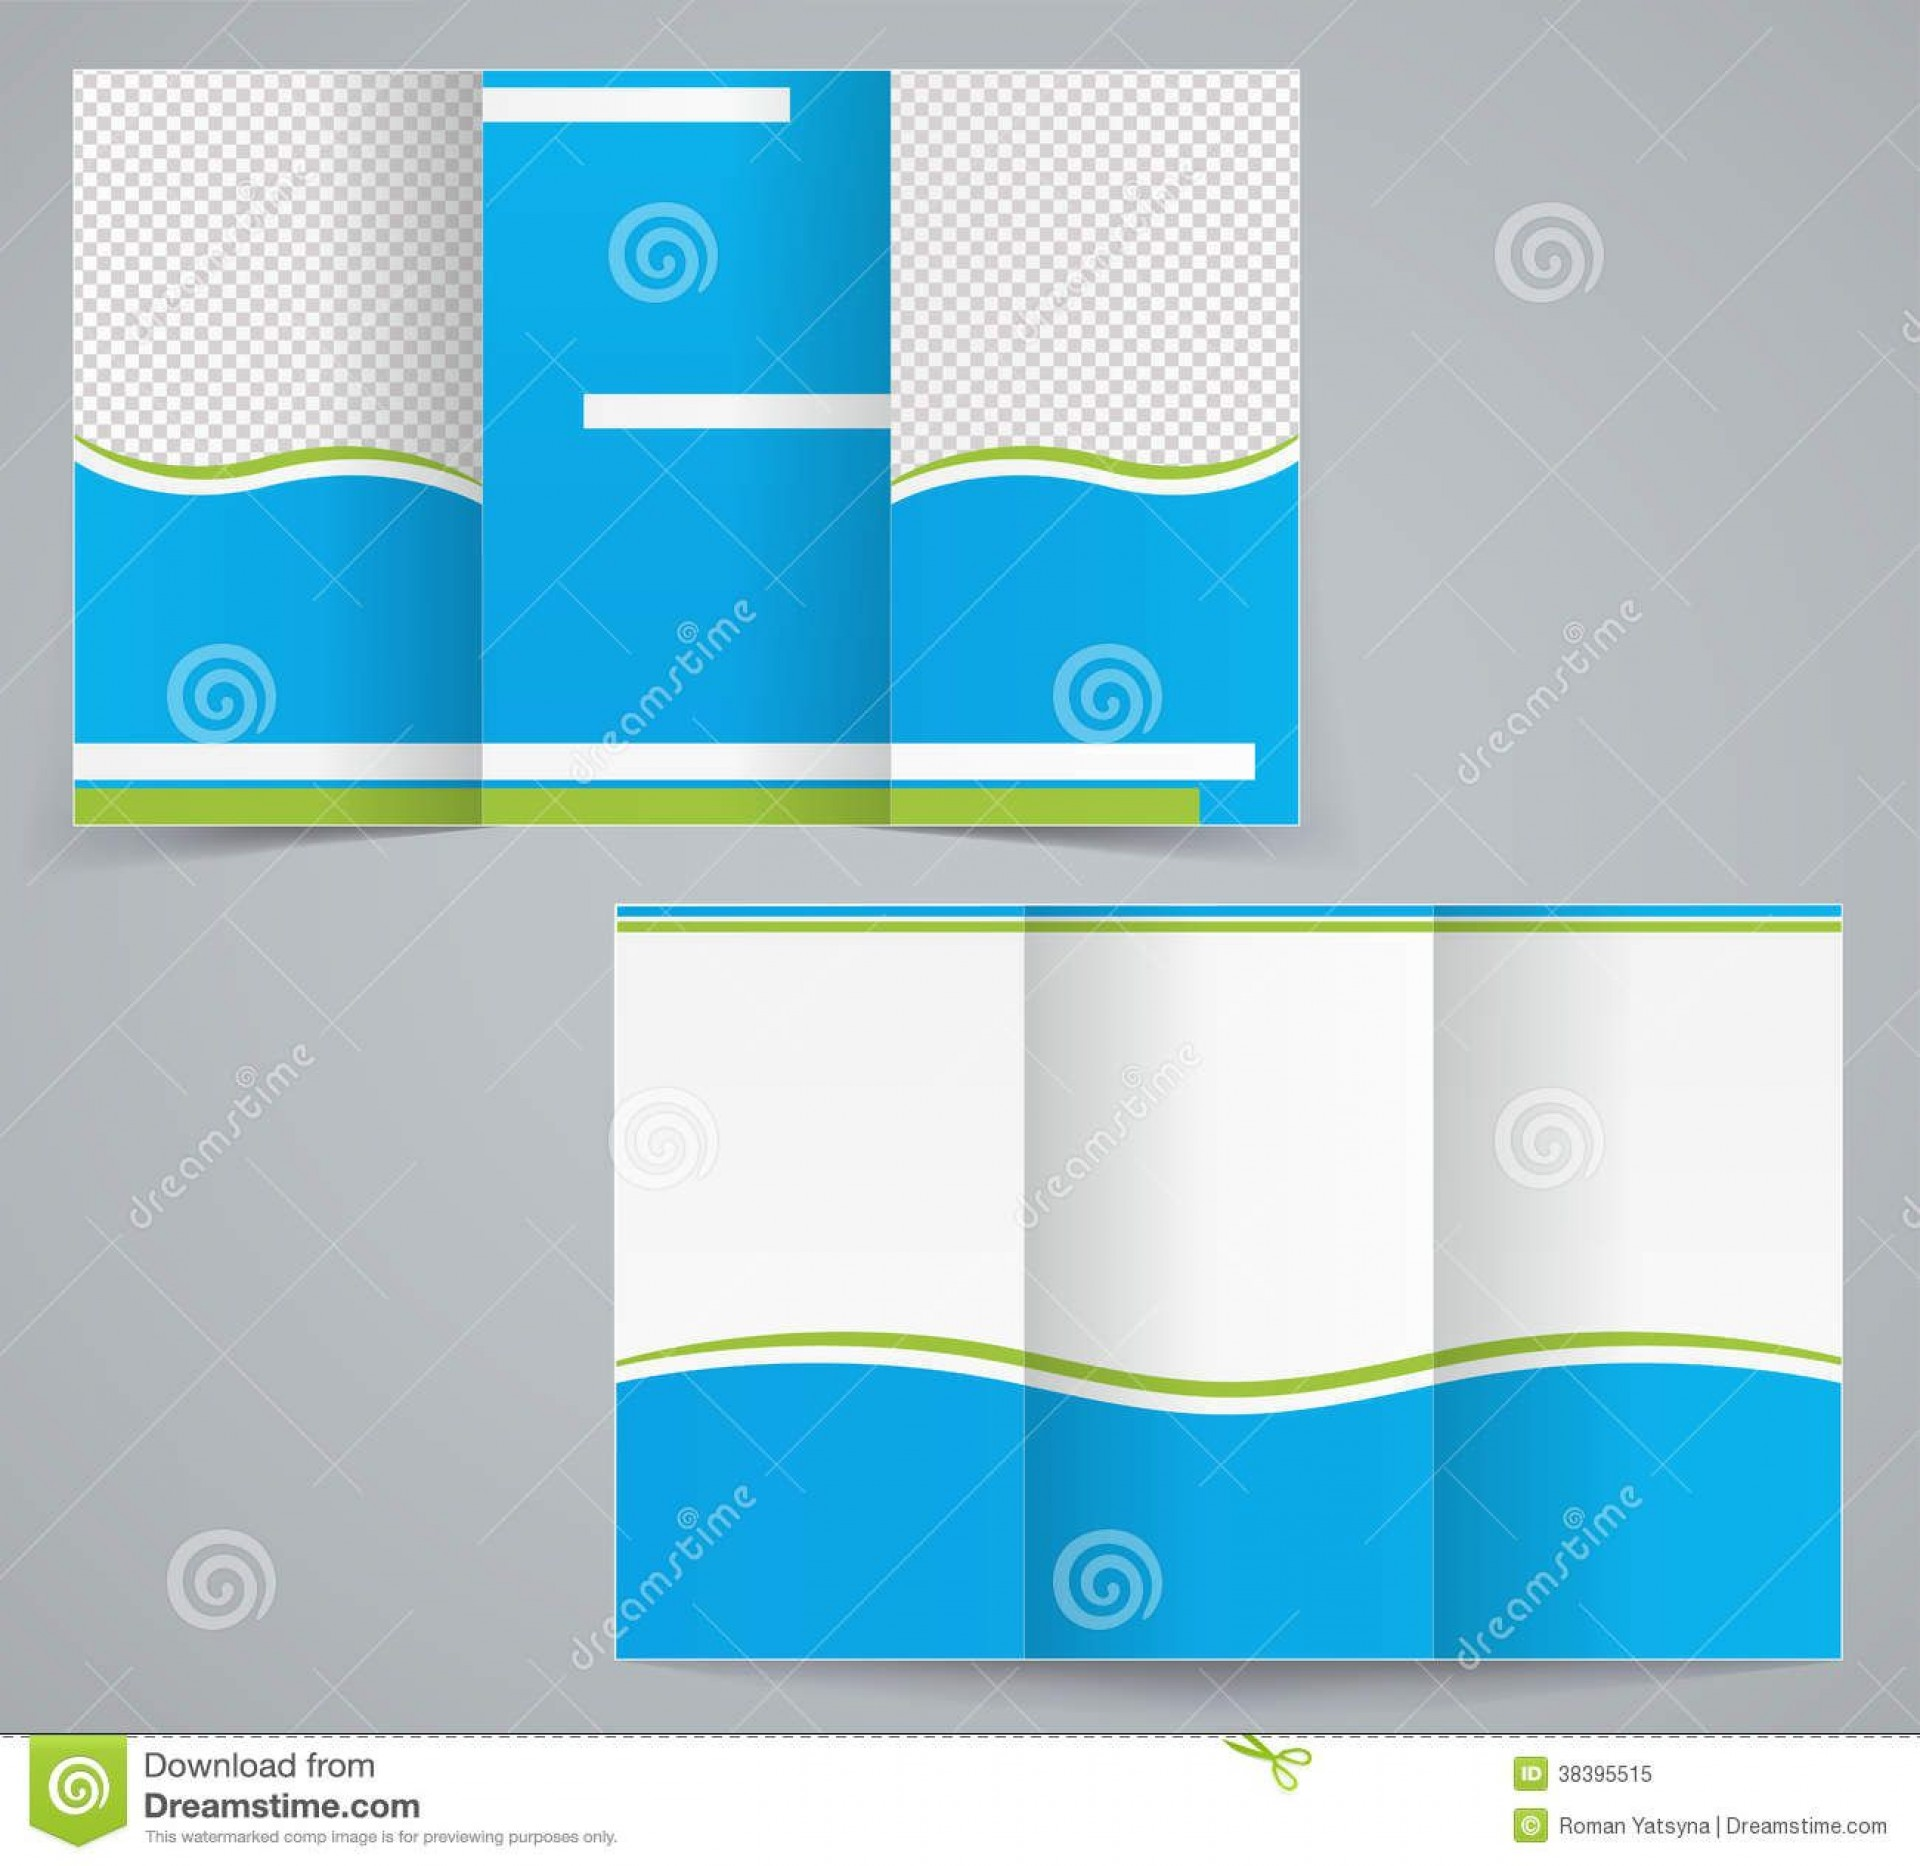 008 Outstanding Word Tri Fold Brochure Template High Resolution  2010 Microsoft M Office1920